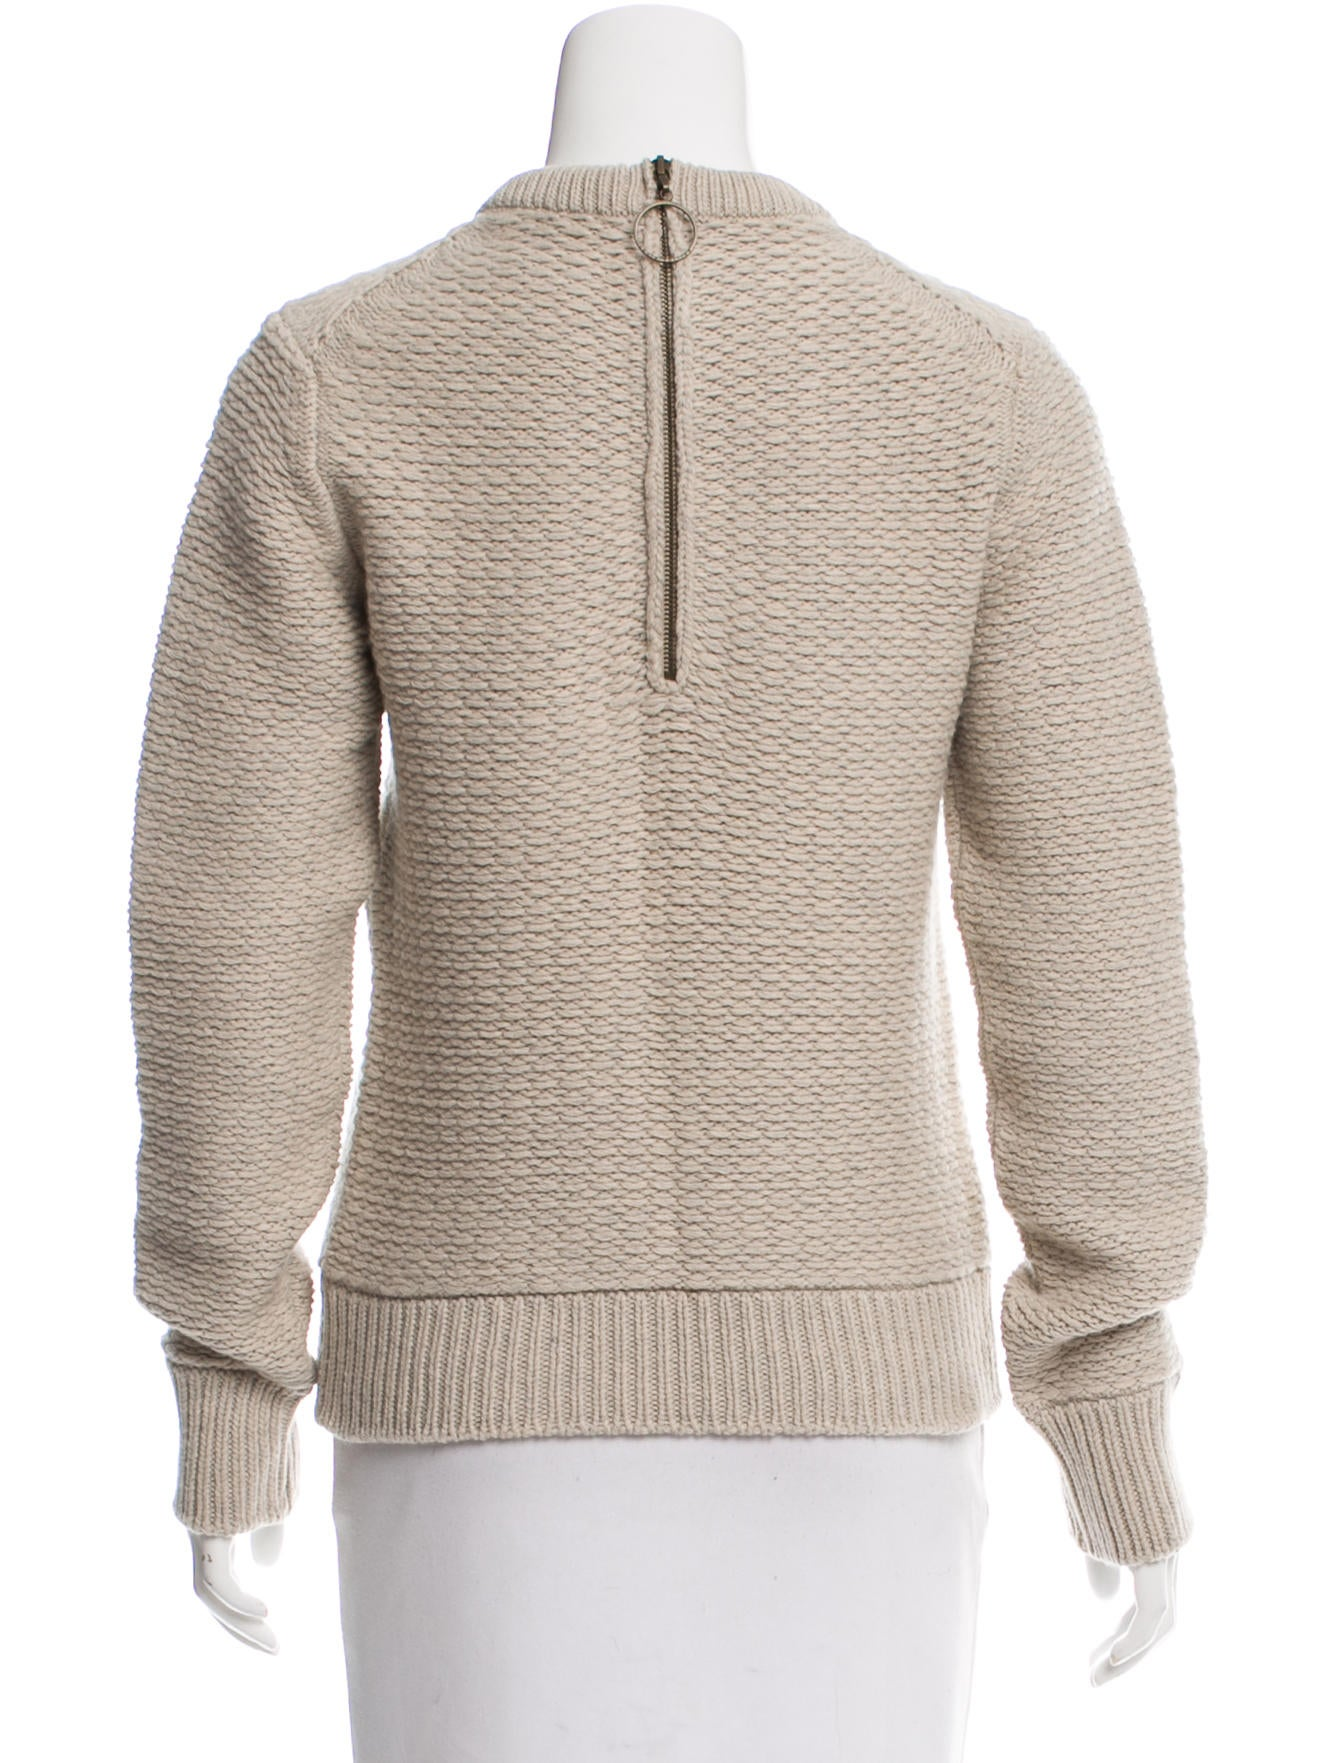 Free shipping BOTH ways on Sweaters, Cashmere, from our vast selection of styles. Fast delivery, and 24/7/ real-person service with a smile. Click or call